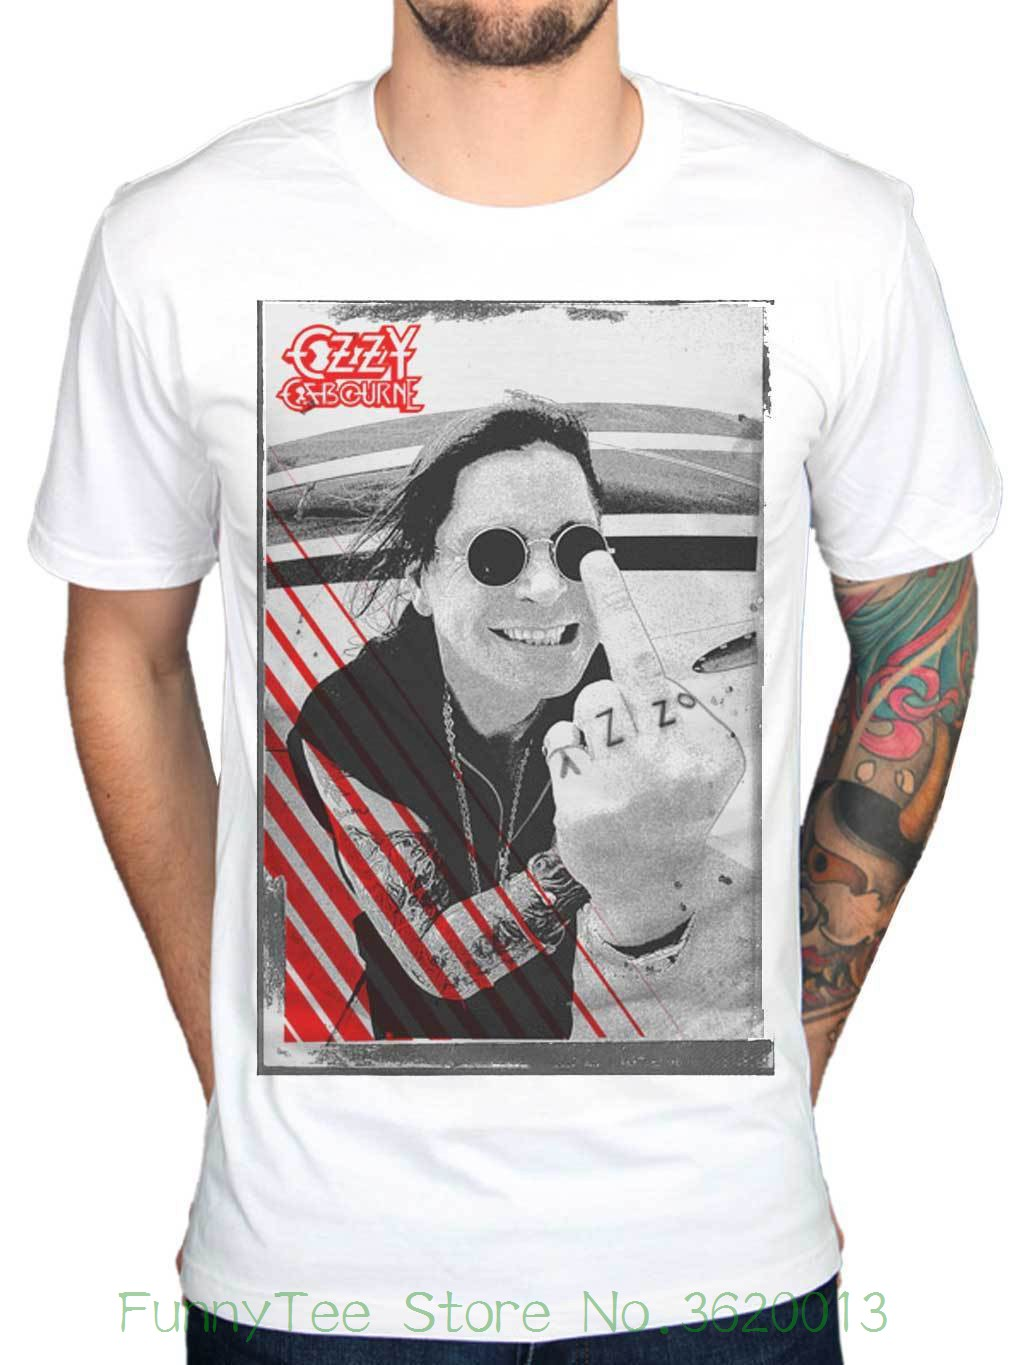 Official Ozzy Osbourne Middle Finger T-shirt Crazy Train Live Scream Red Cross